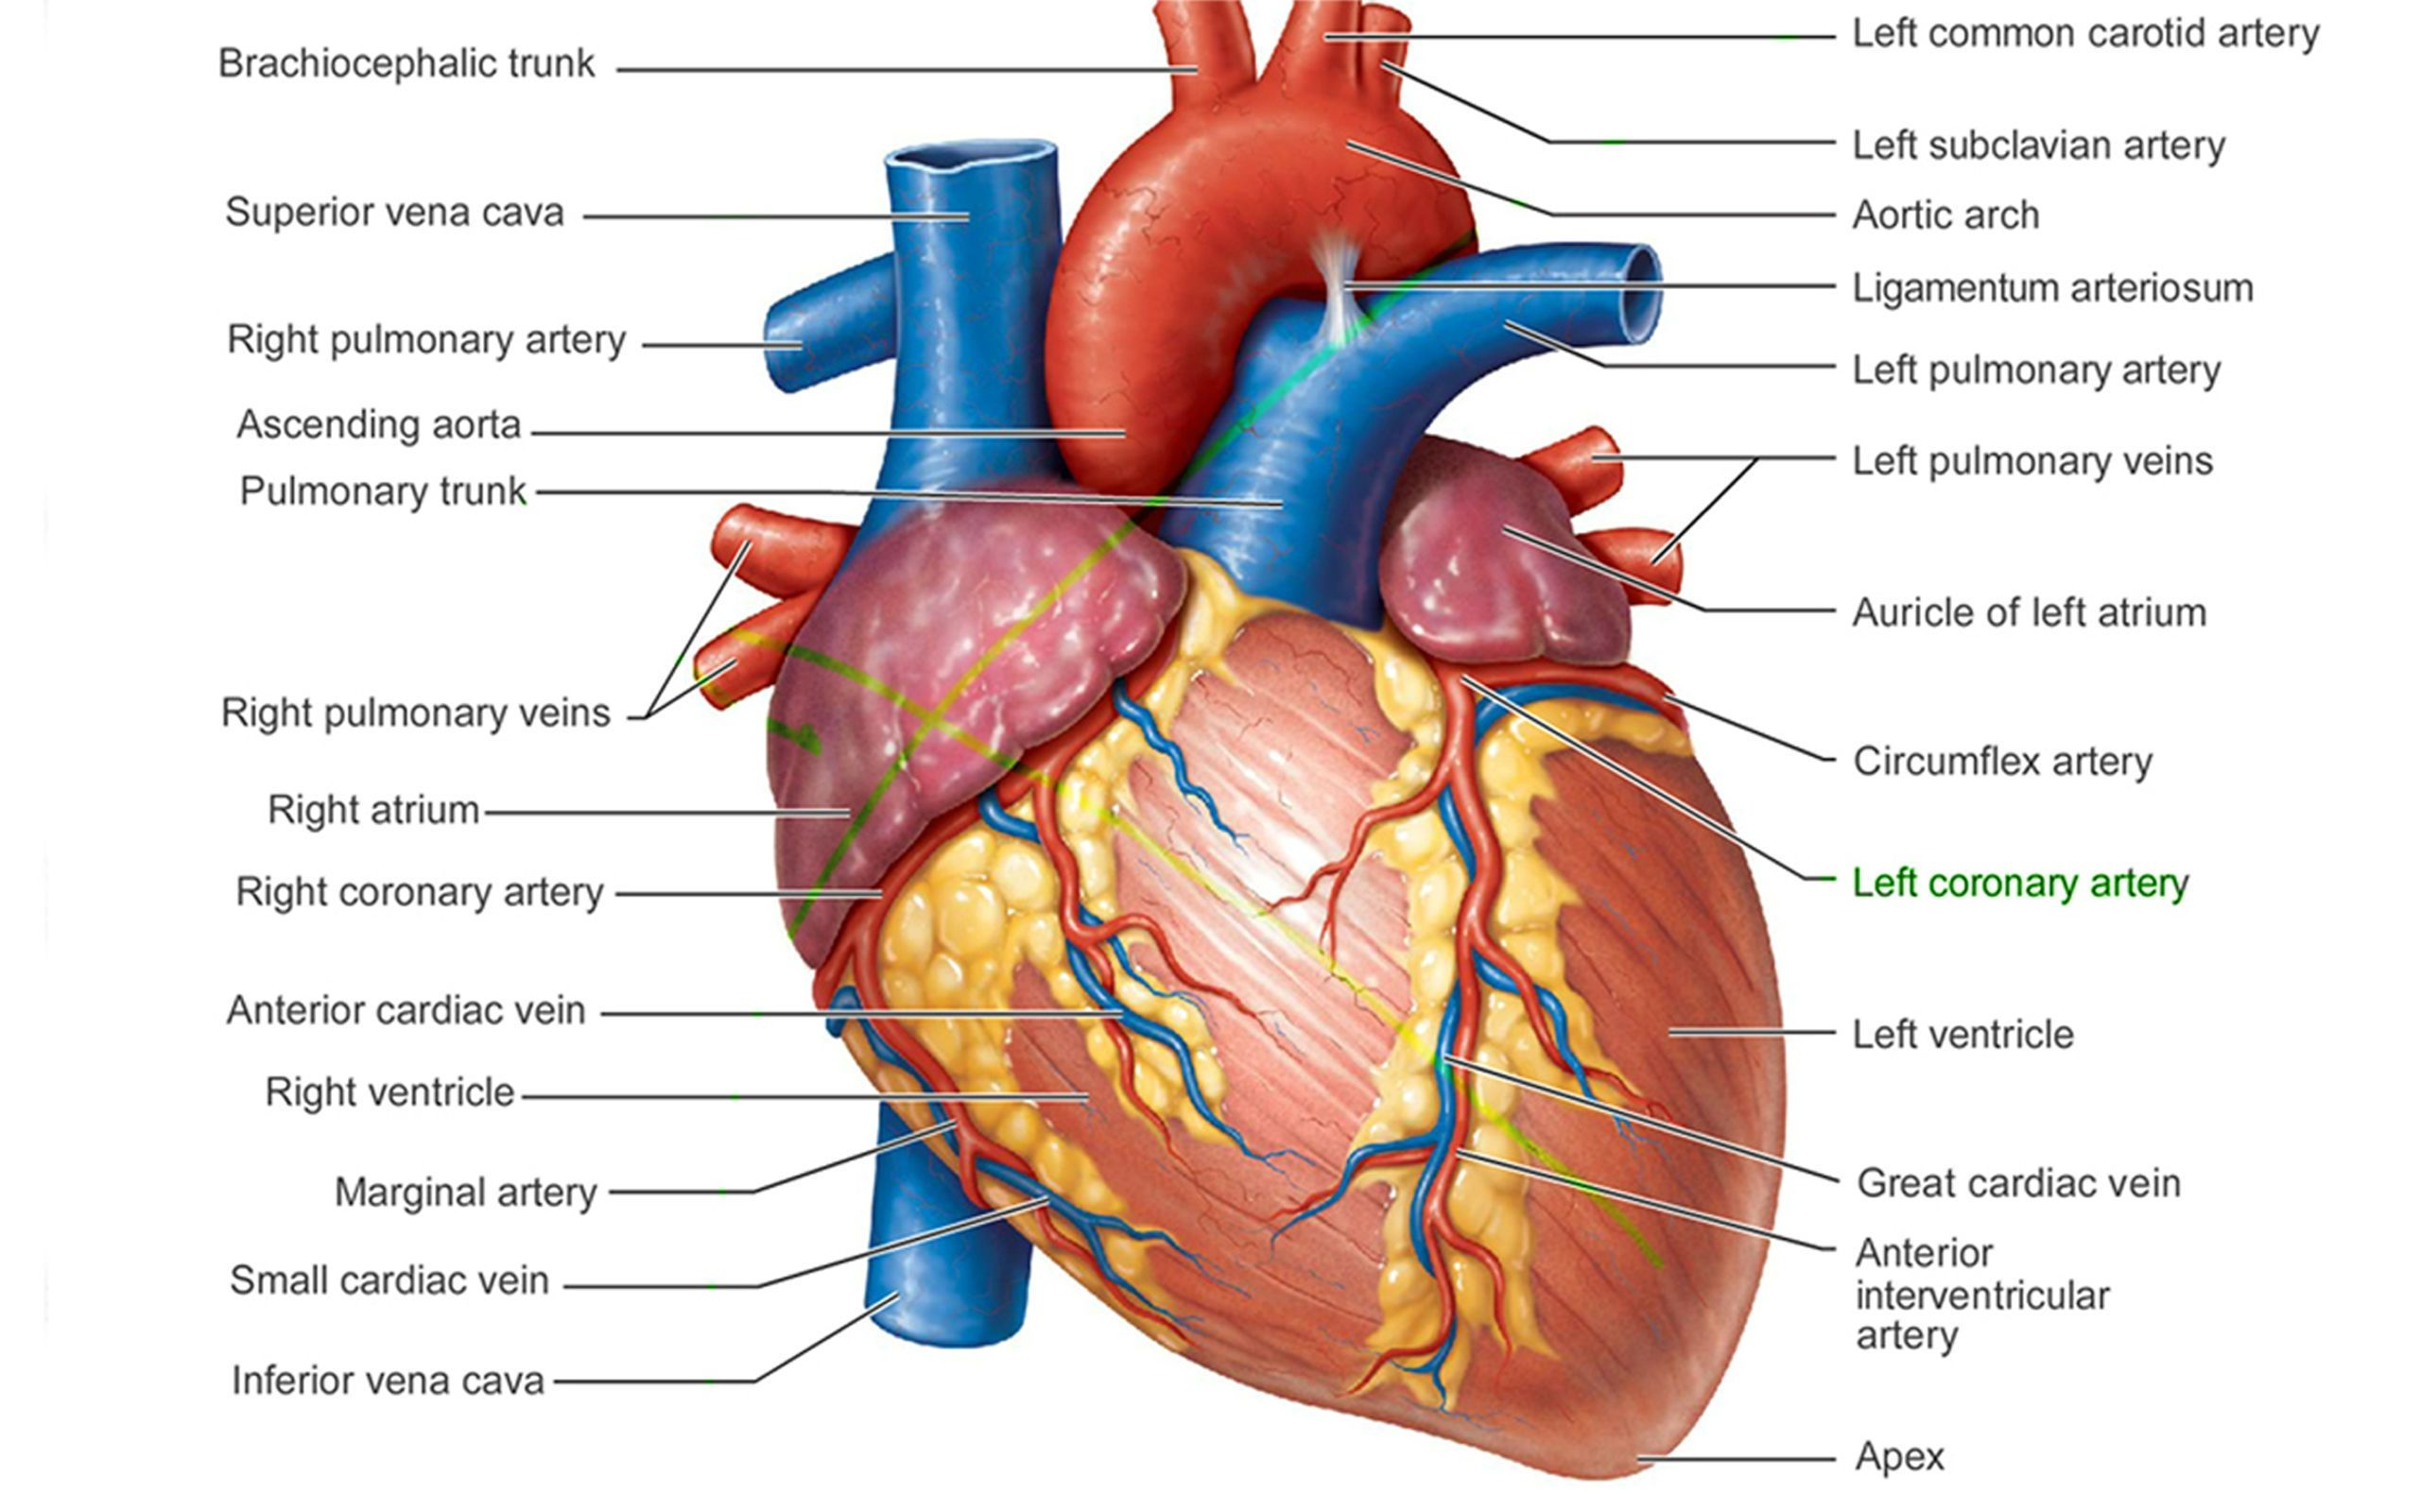 Pictures Of Human Heart Anatomy Anatomy Of The Human Heart 4k Ultra Hd Wallpaper Human Heart Anatomy Heart Anatomy Human Anatomy And Physiology